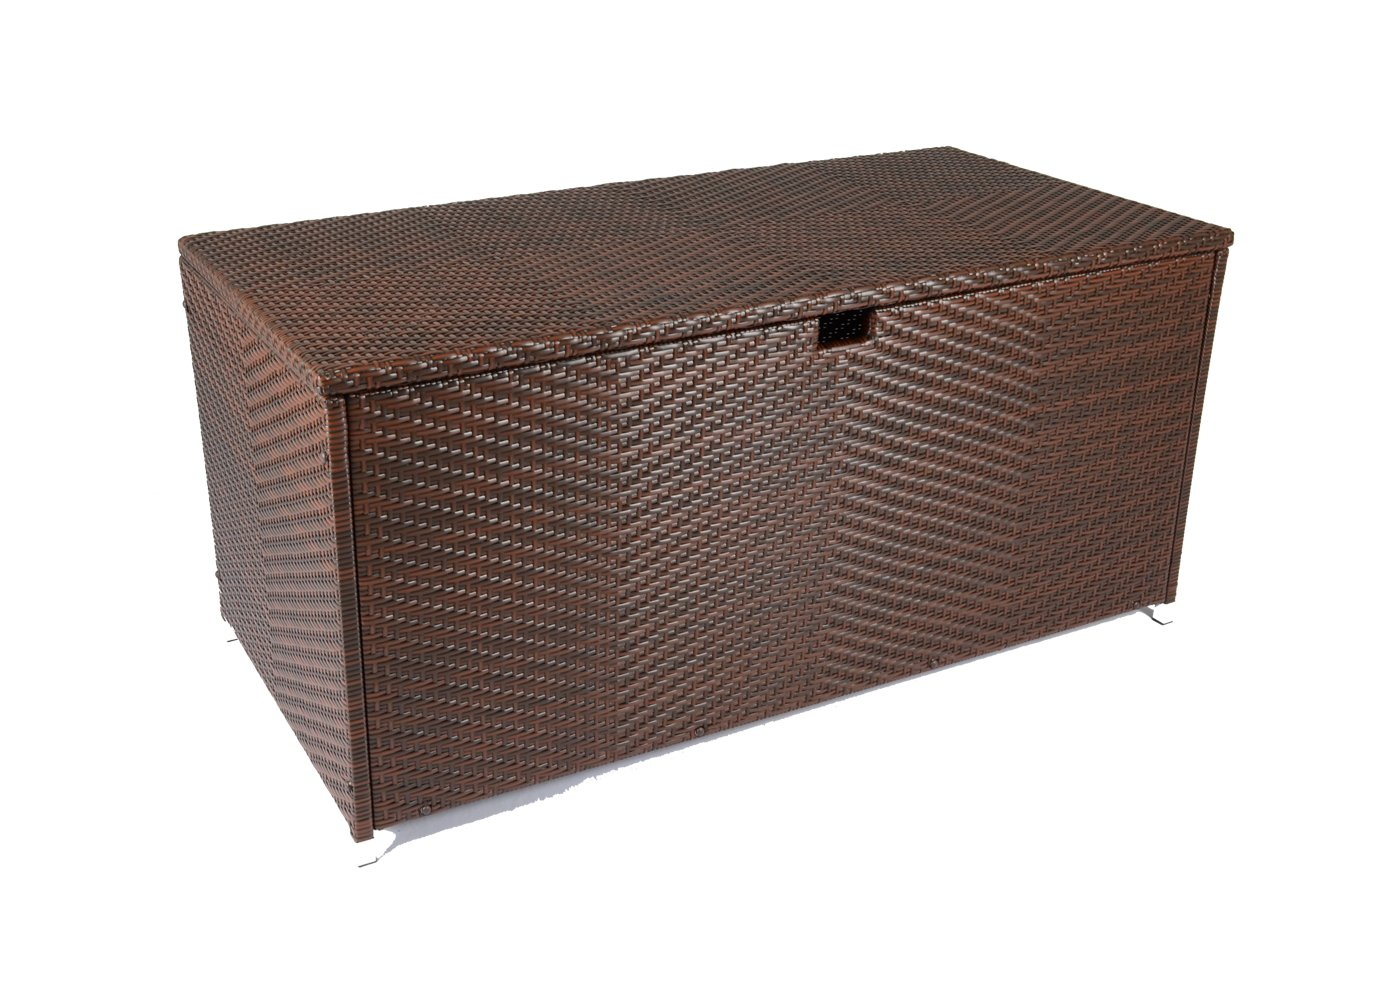 Tortuga Outdoor Sea Pines Storage Box (Large) - Java Wicker